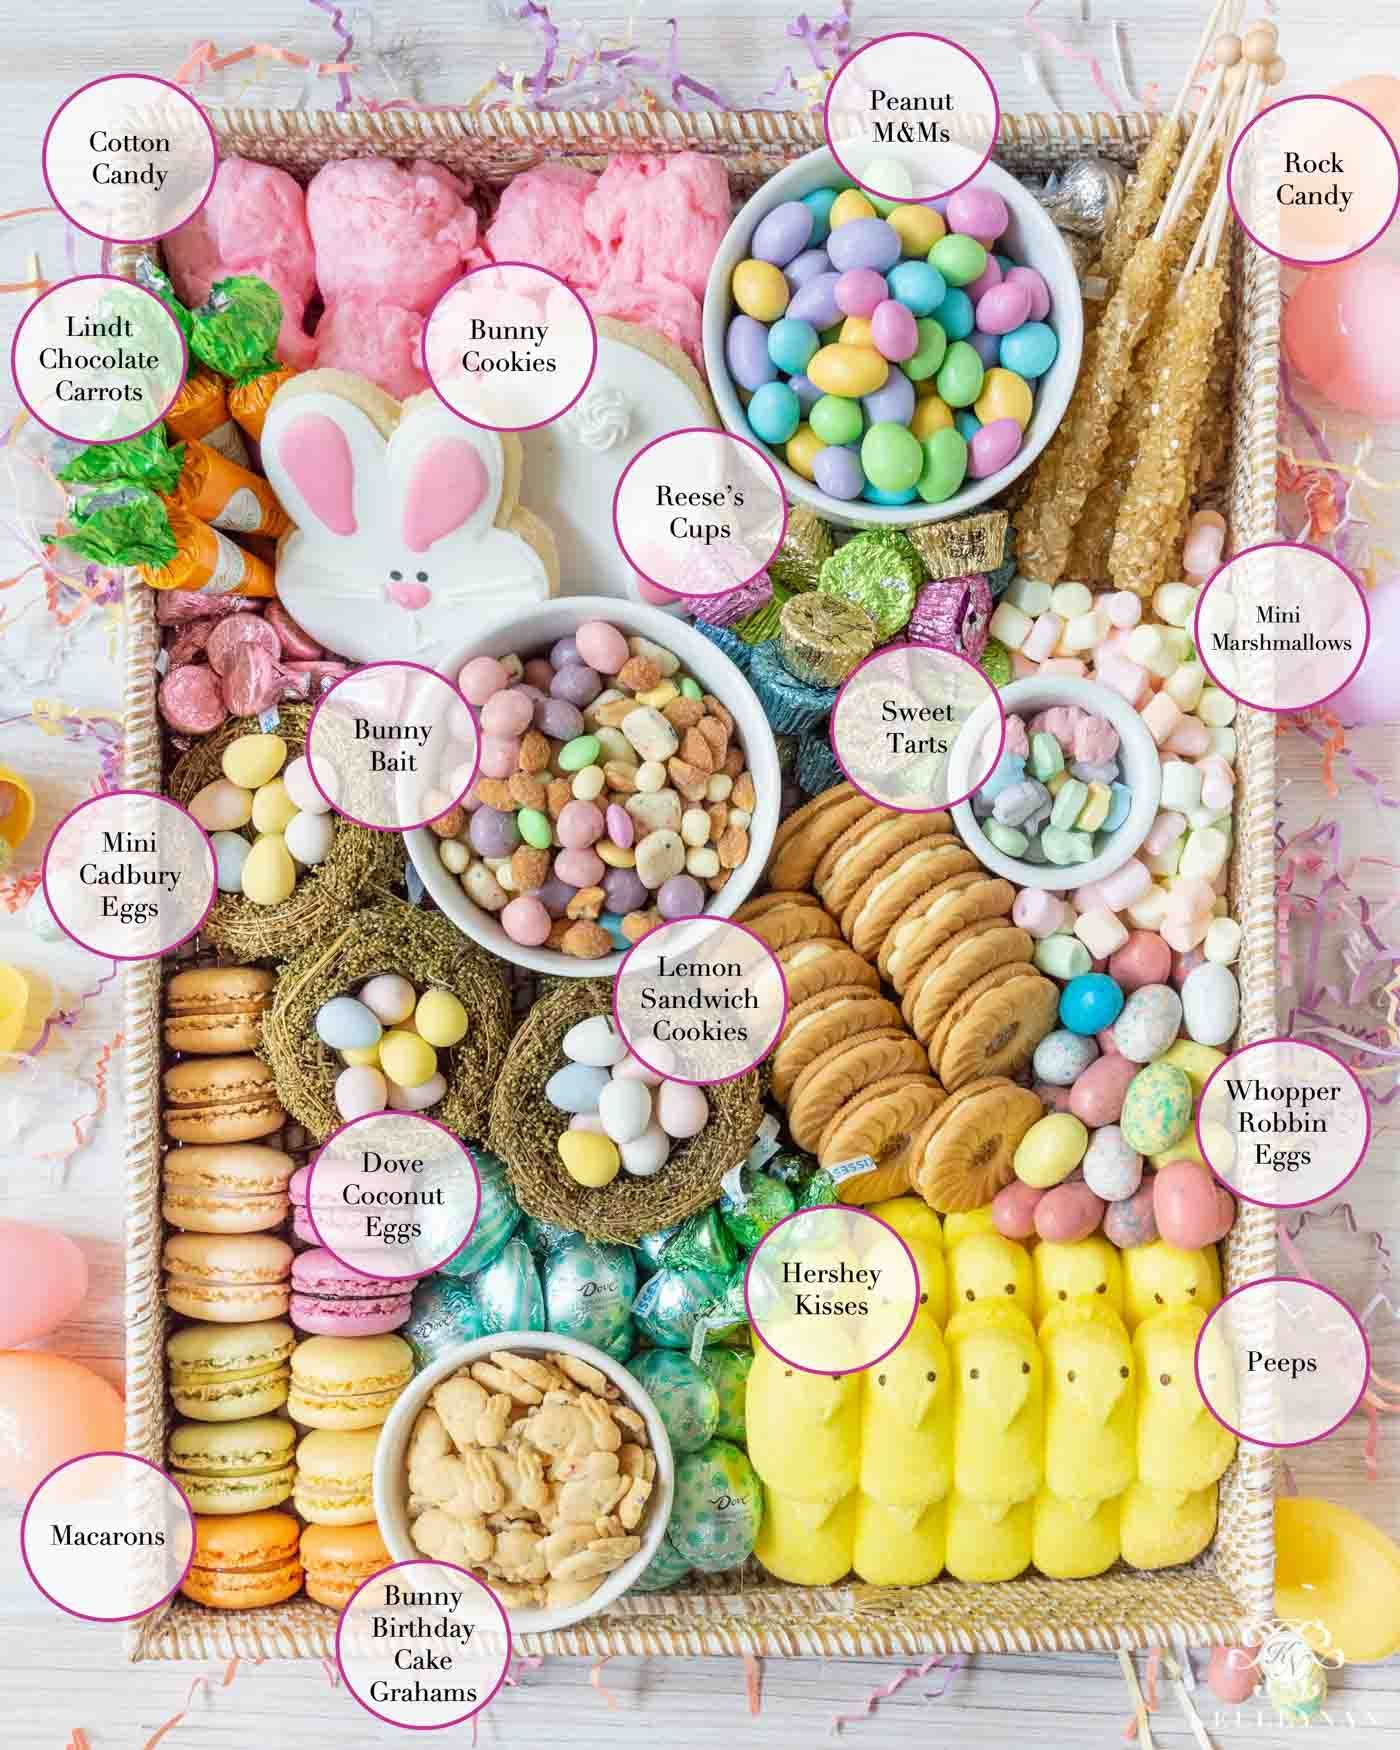 How to Make an Easter Candy and Sweets Board